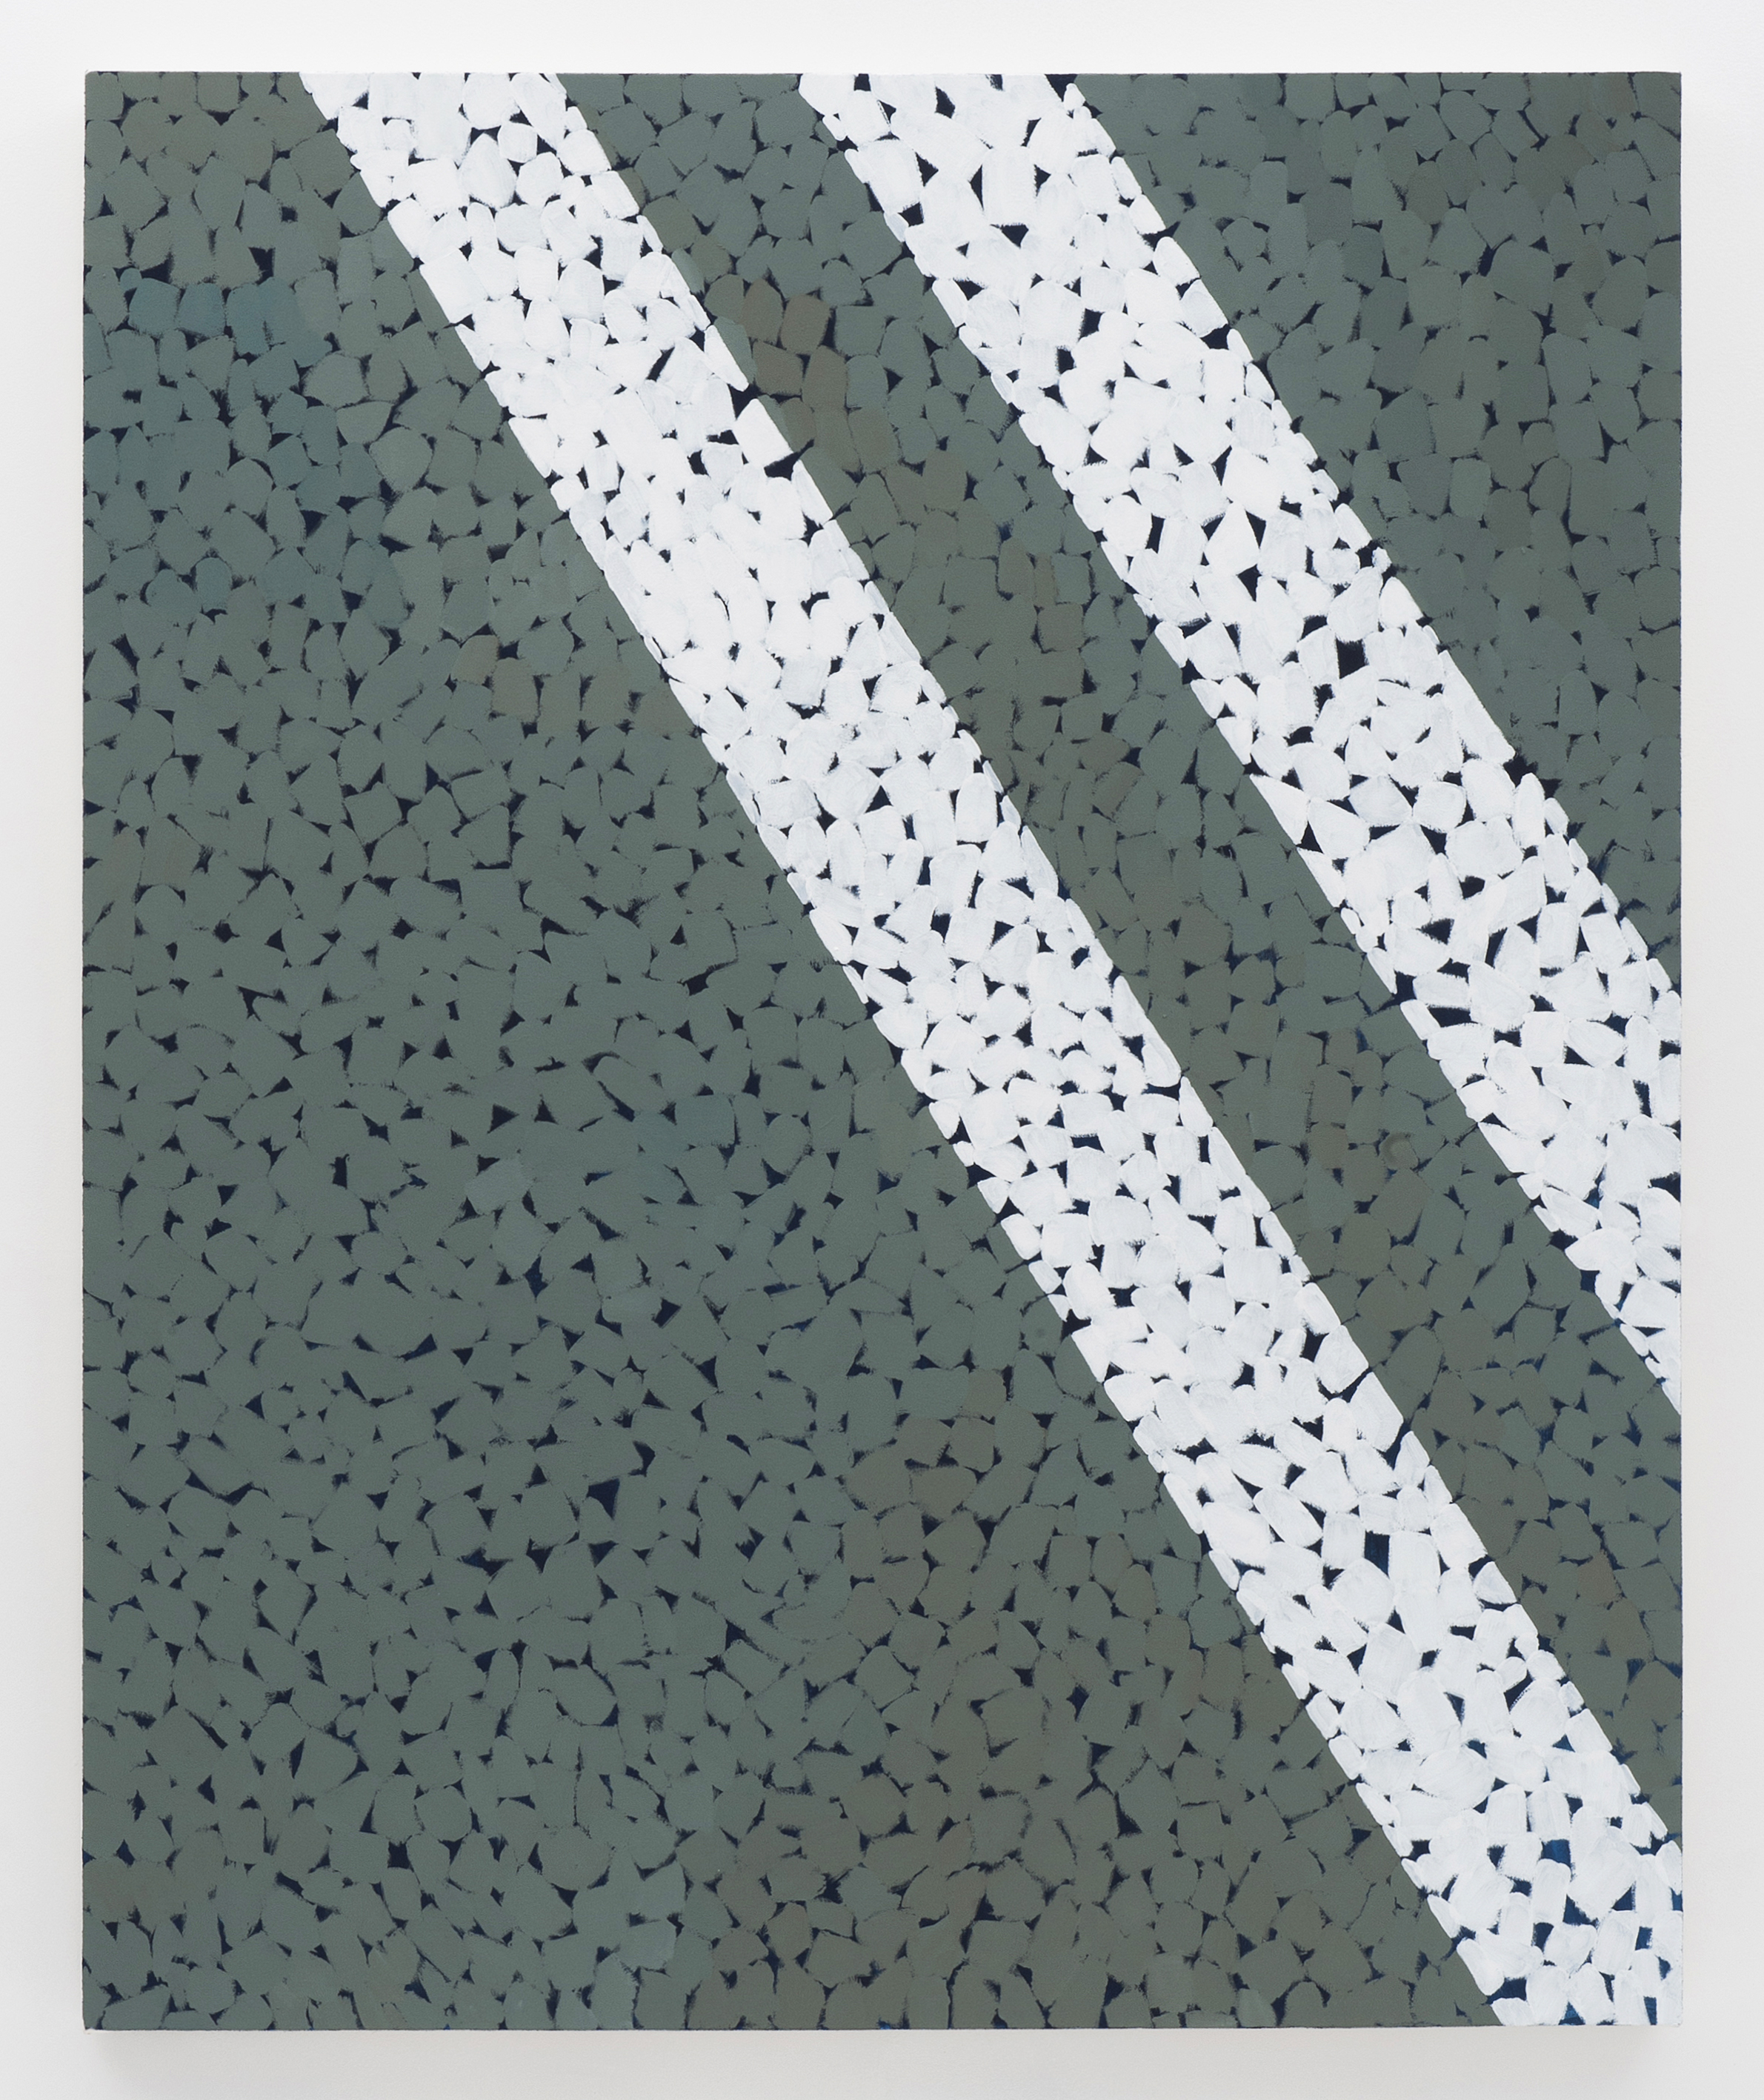 Corydon Cowansage, Asphalt 3, 2015, acrylic on canvas, 50 x 40 inches